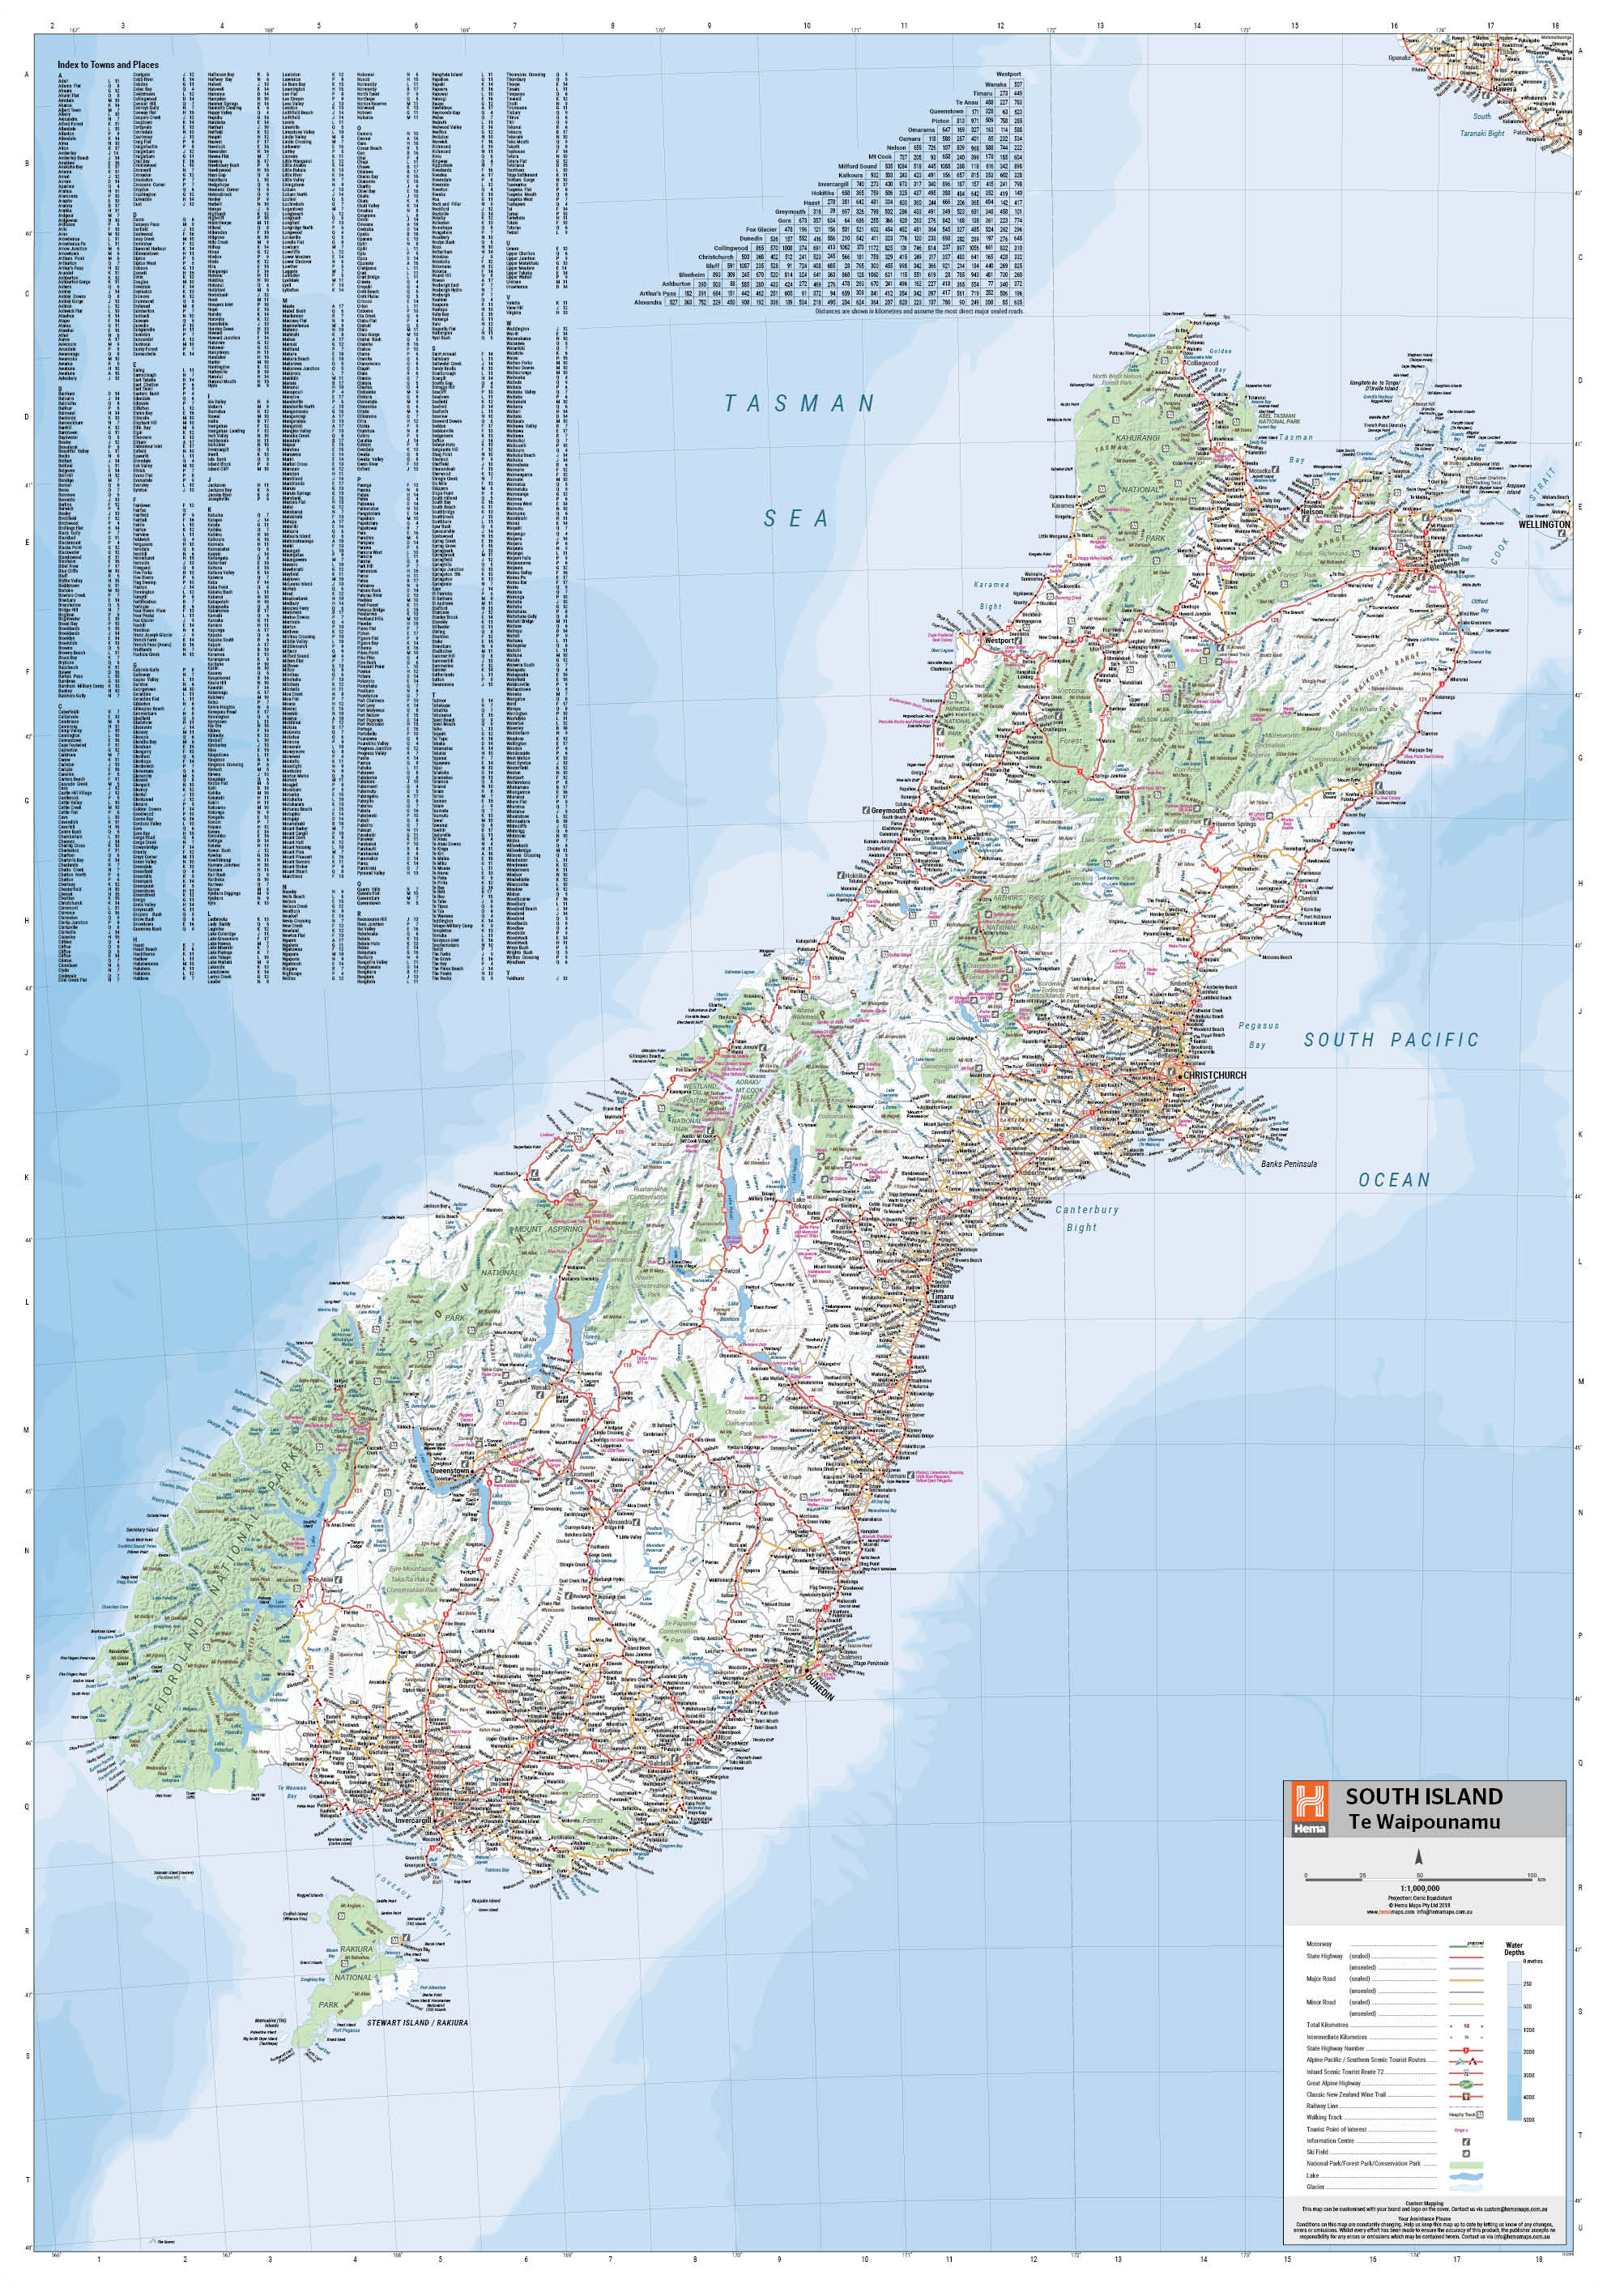 South Island Map Of New Zealand.South Island New Zealand Hema Maps